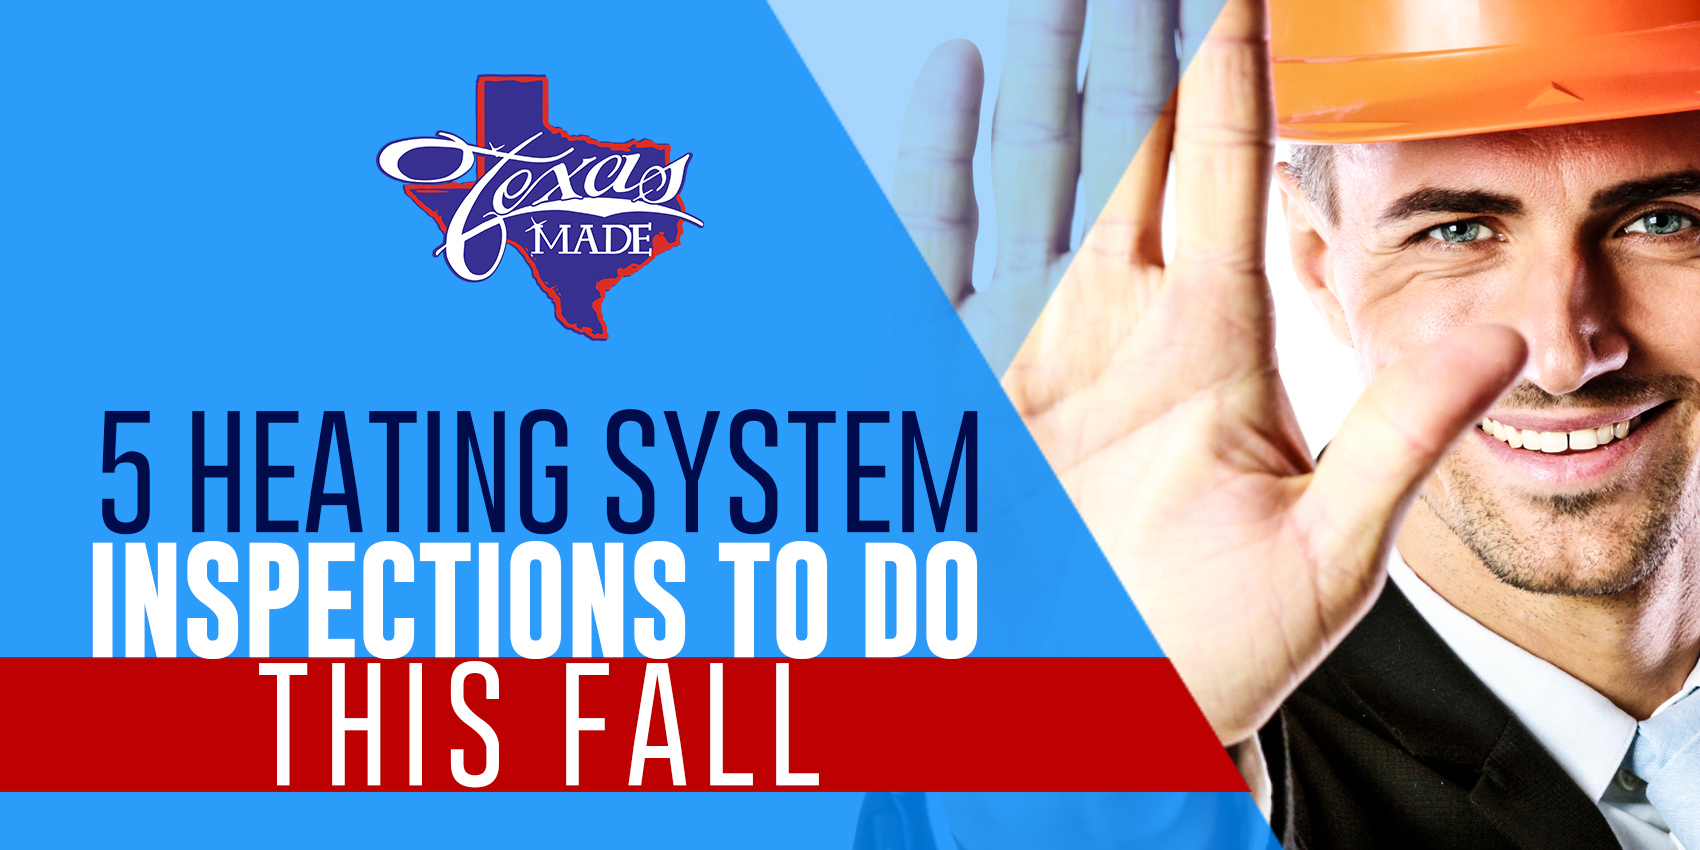 5 Heating System Inspections To Do This Fall